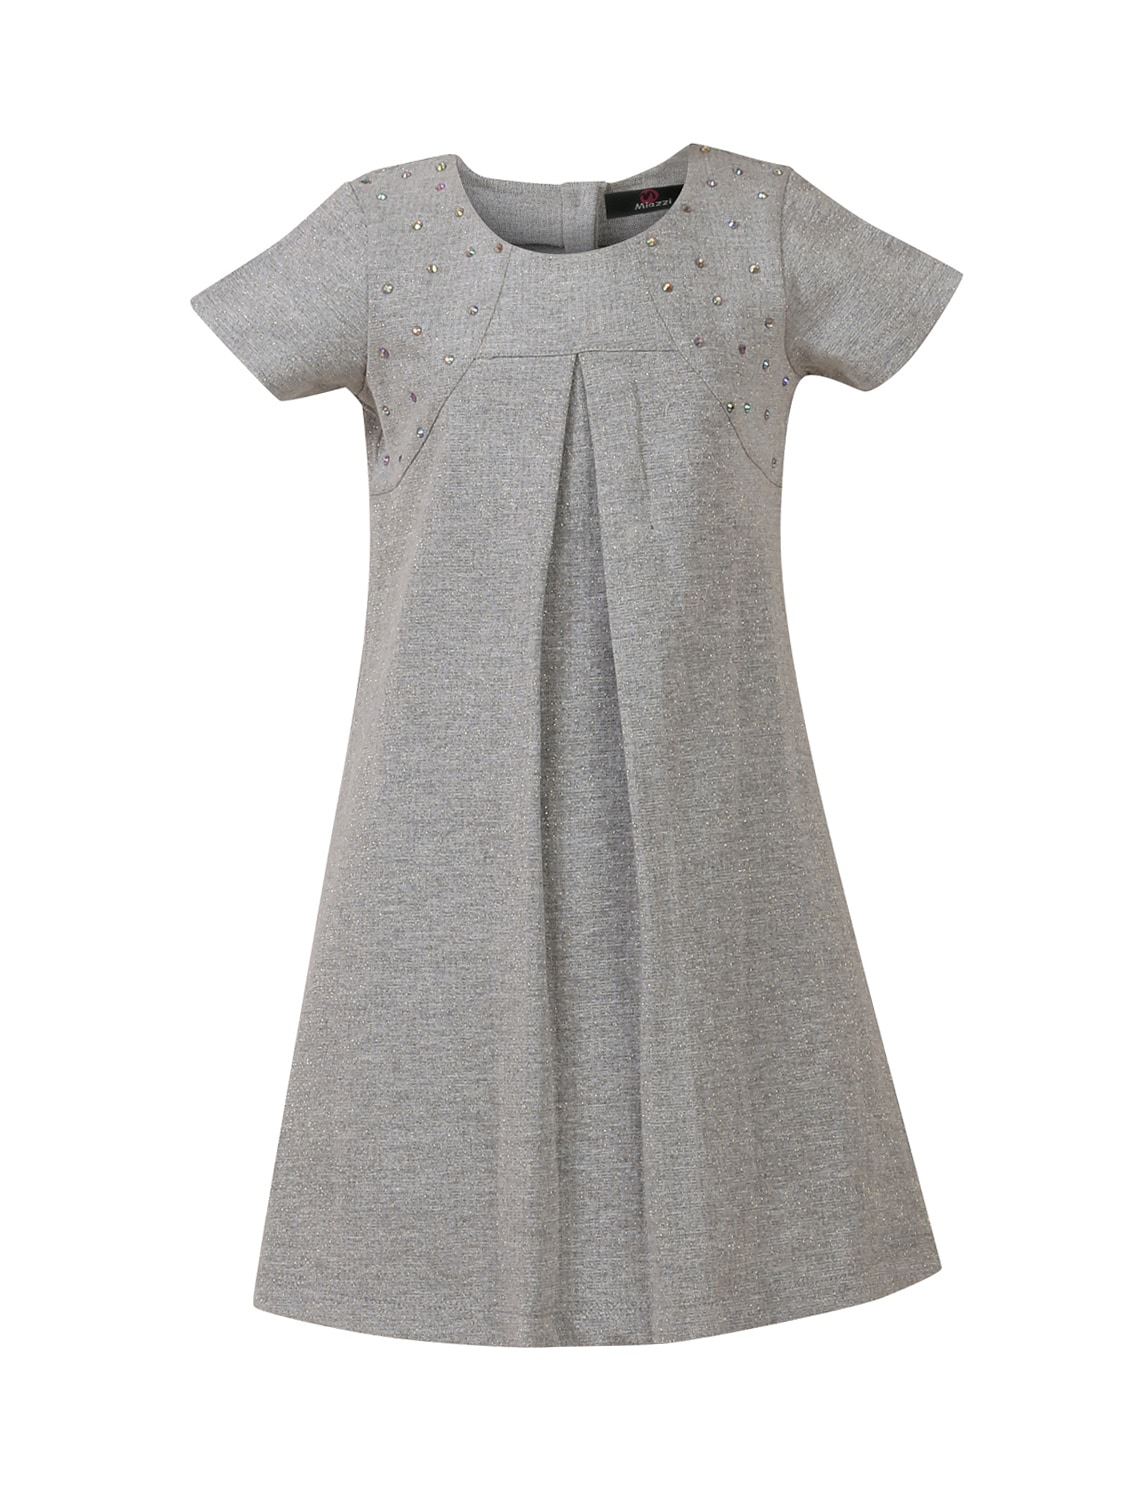 d026ab54814d Buy Grey Cotton Frock by Miazzi - Online shopping for Frocks in ...